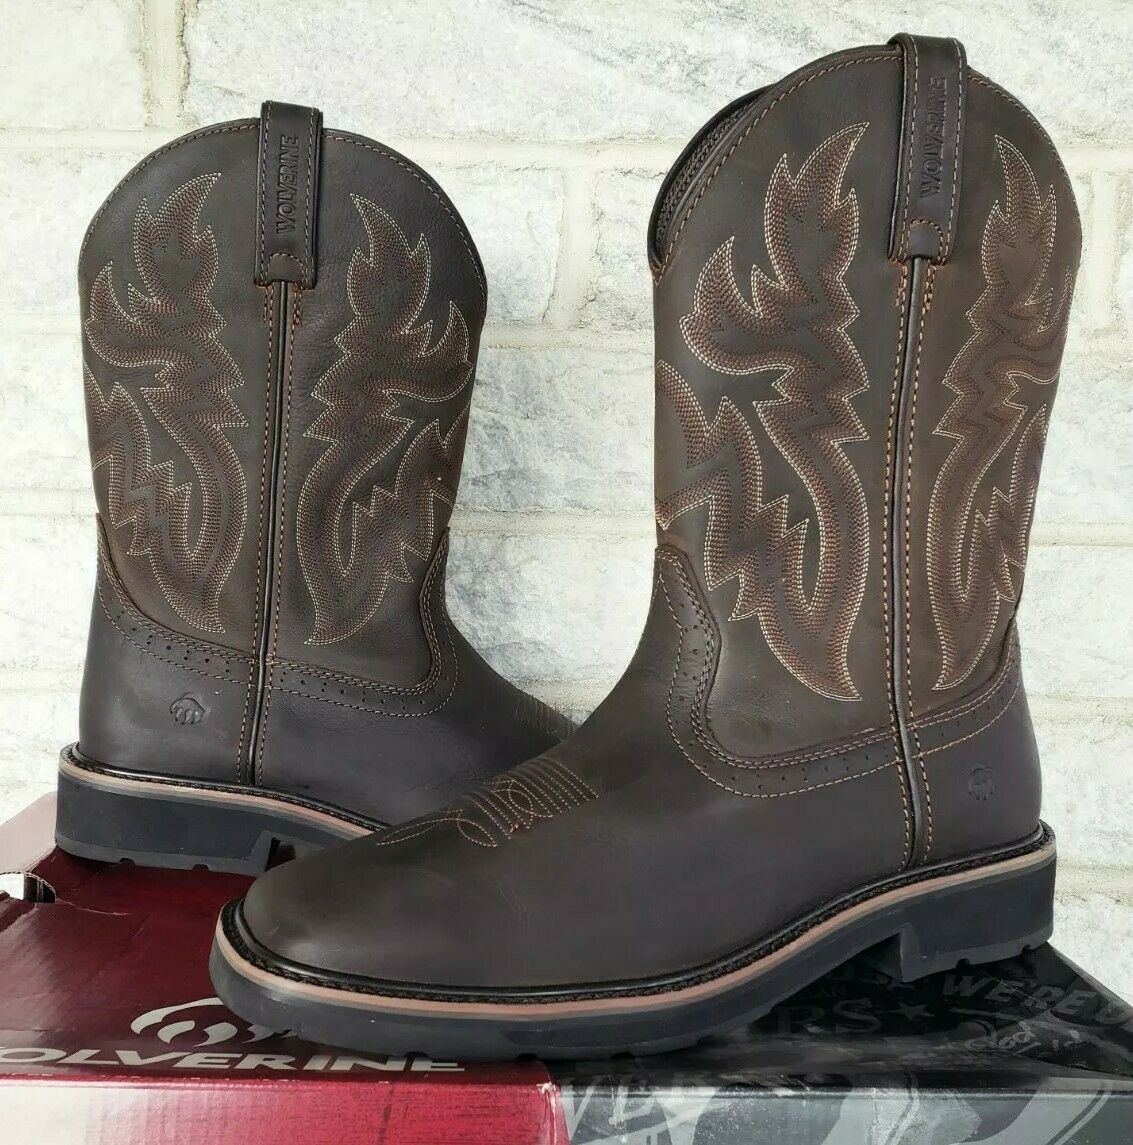 Wolverine Mens Rancher Wellington Work Boots Size 10.5 Brown W10704 Square Toe